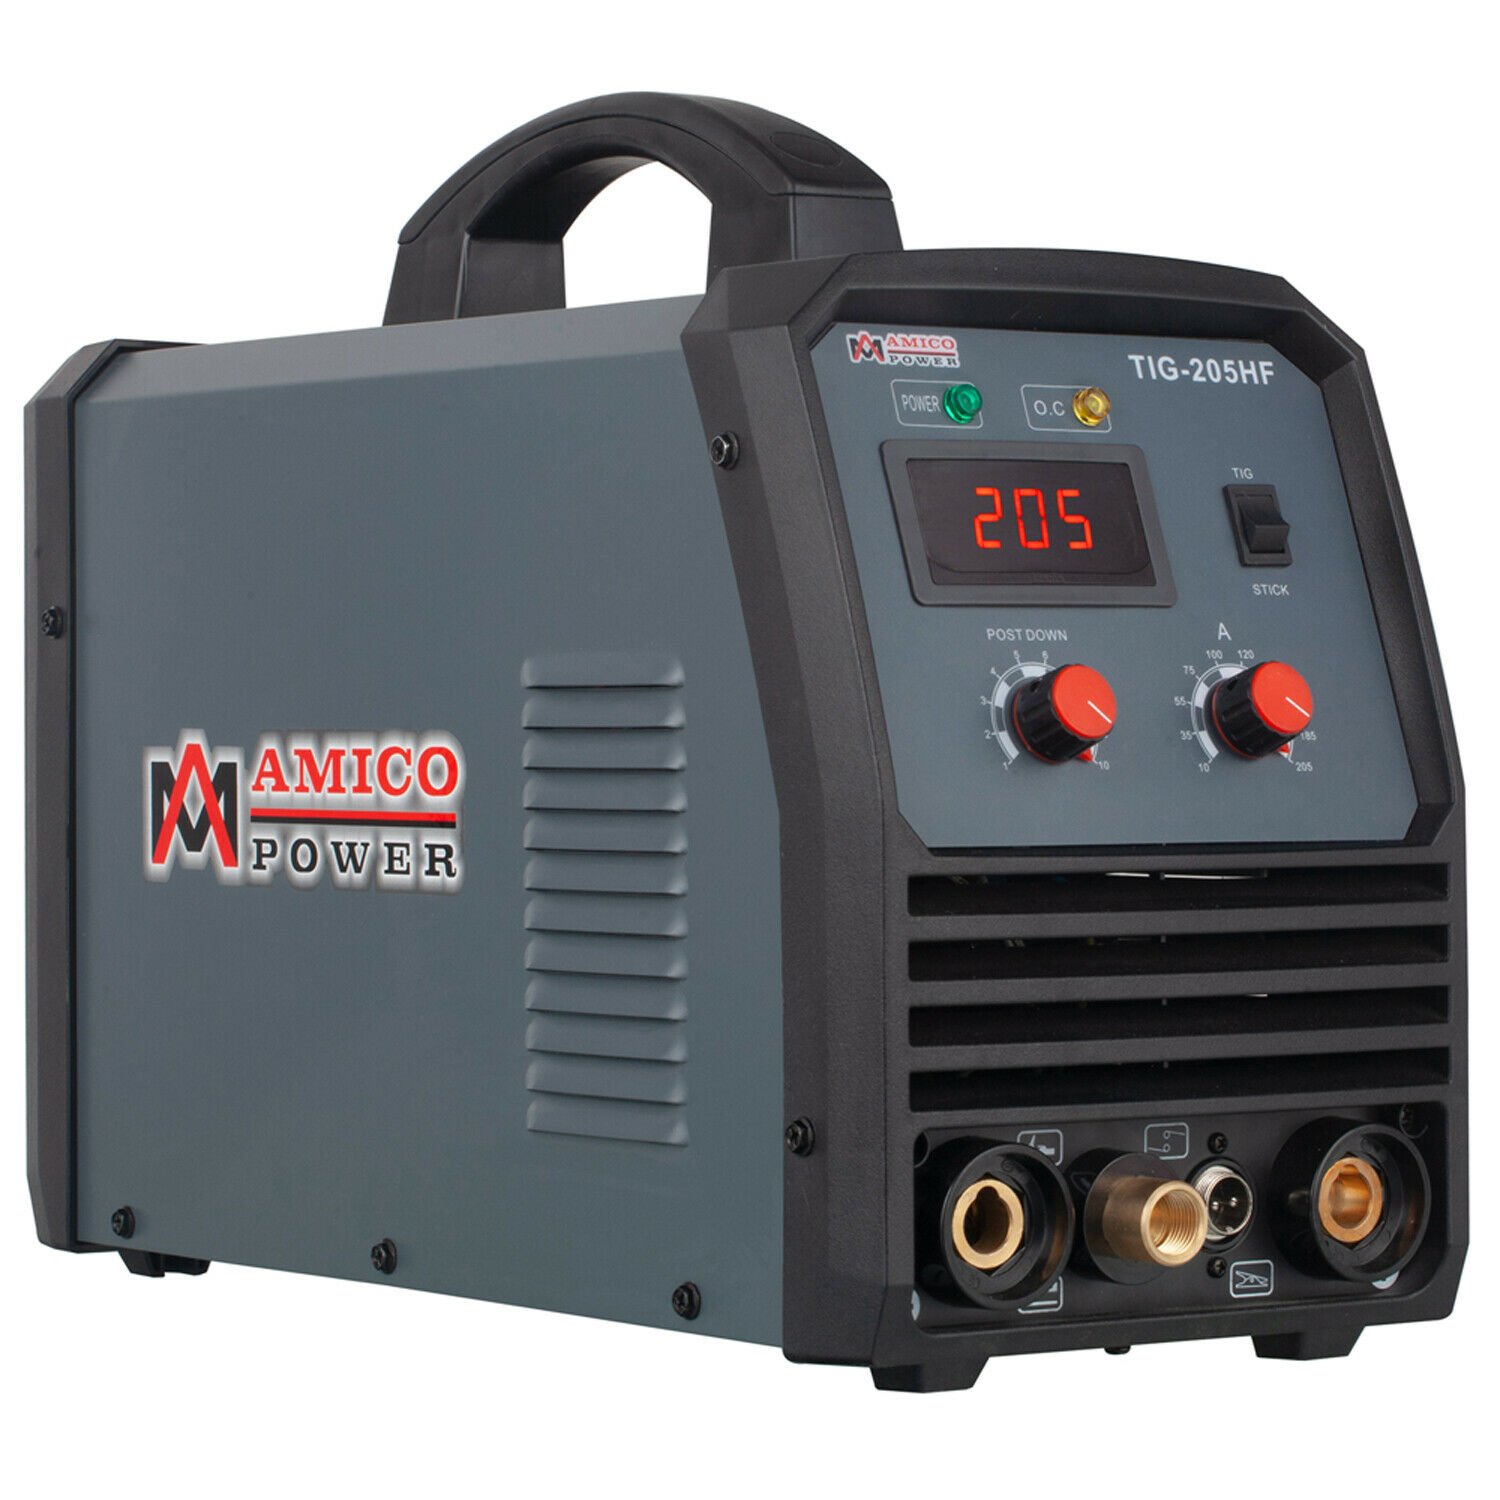 Amico TIG-205HF, 205 Amp TIG Torch Stick Arc DC Inverter Welder, 100% Start. Available Now for 299.00